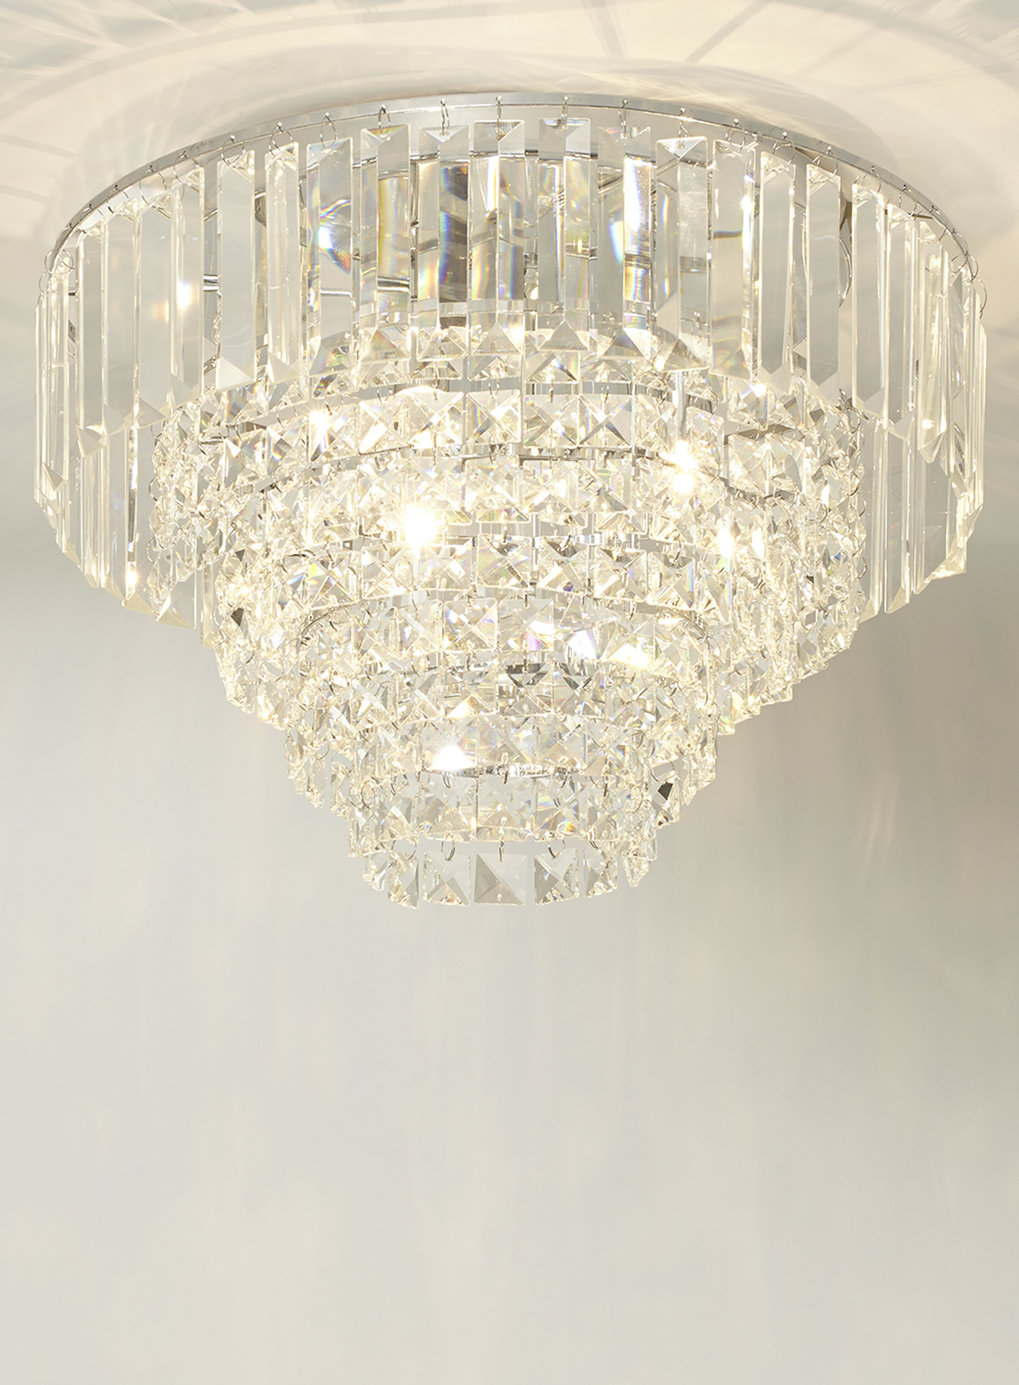 bhs ceiling light photo - 8